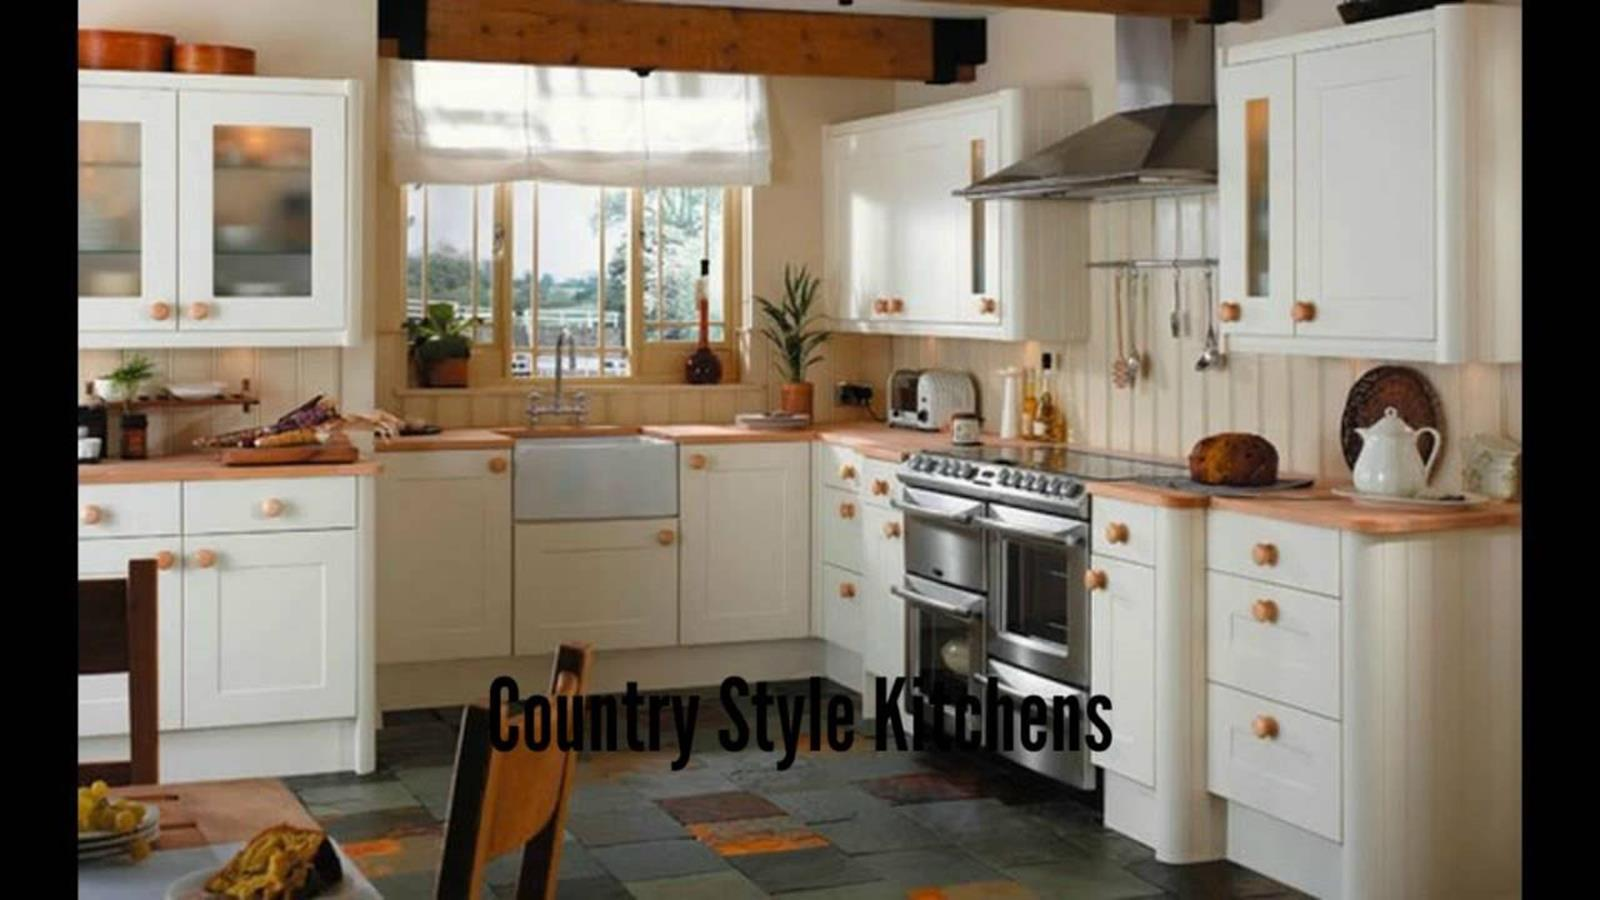 Country Style Kitchen Cabinets Design Ideas 29